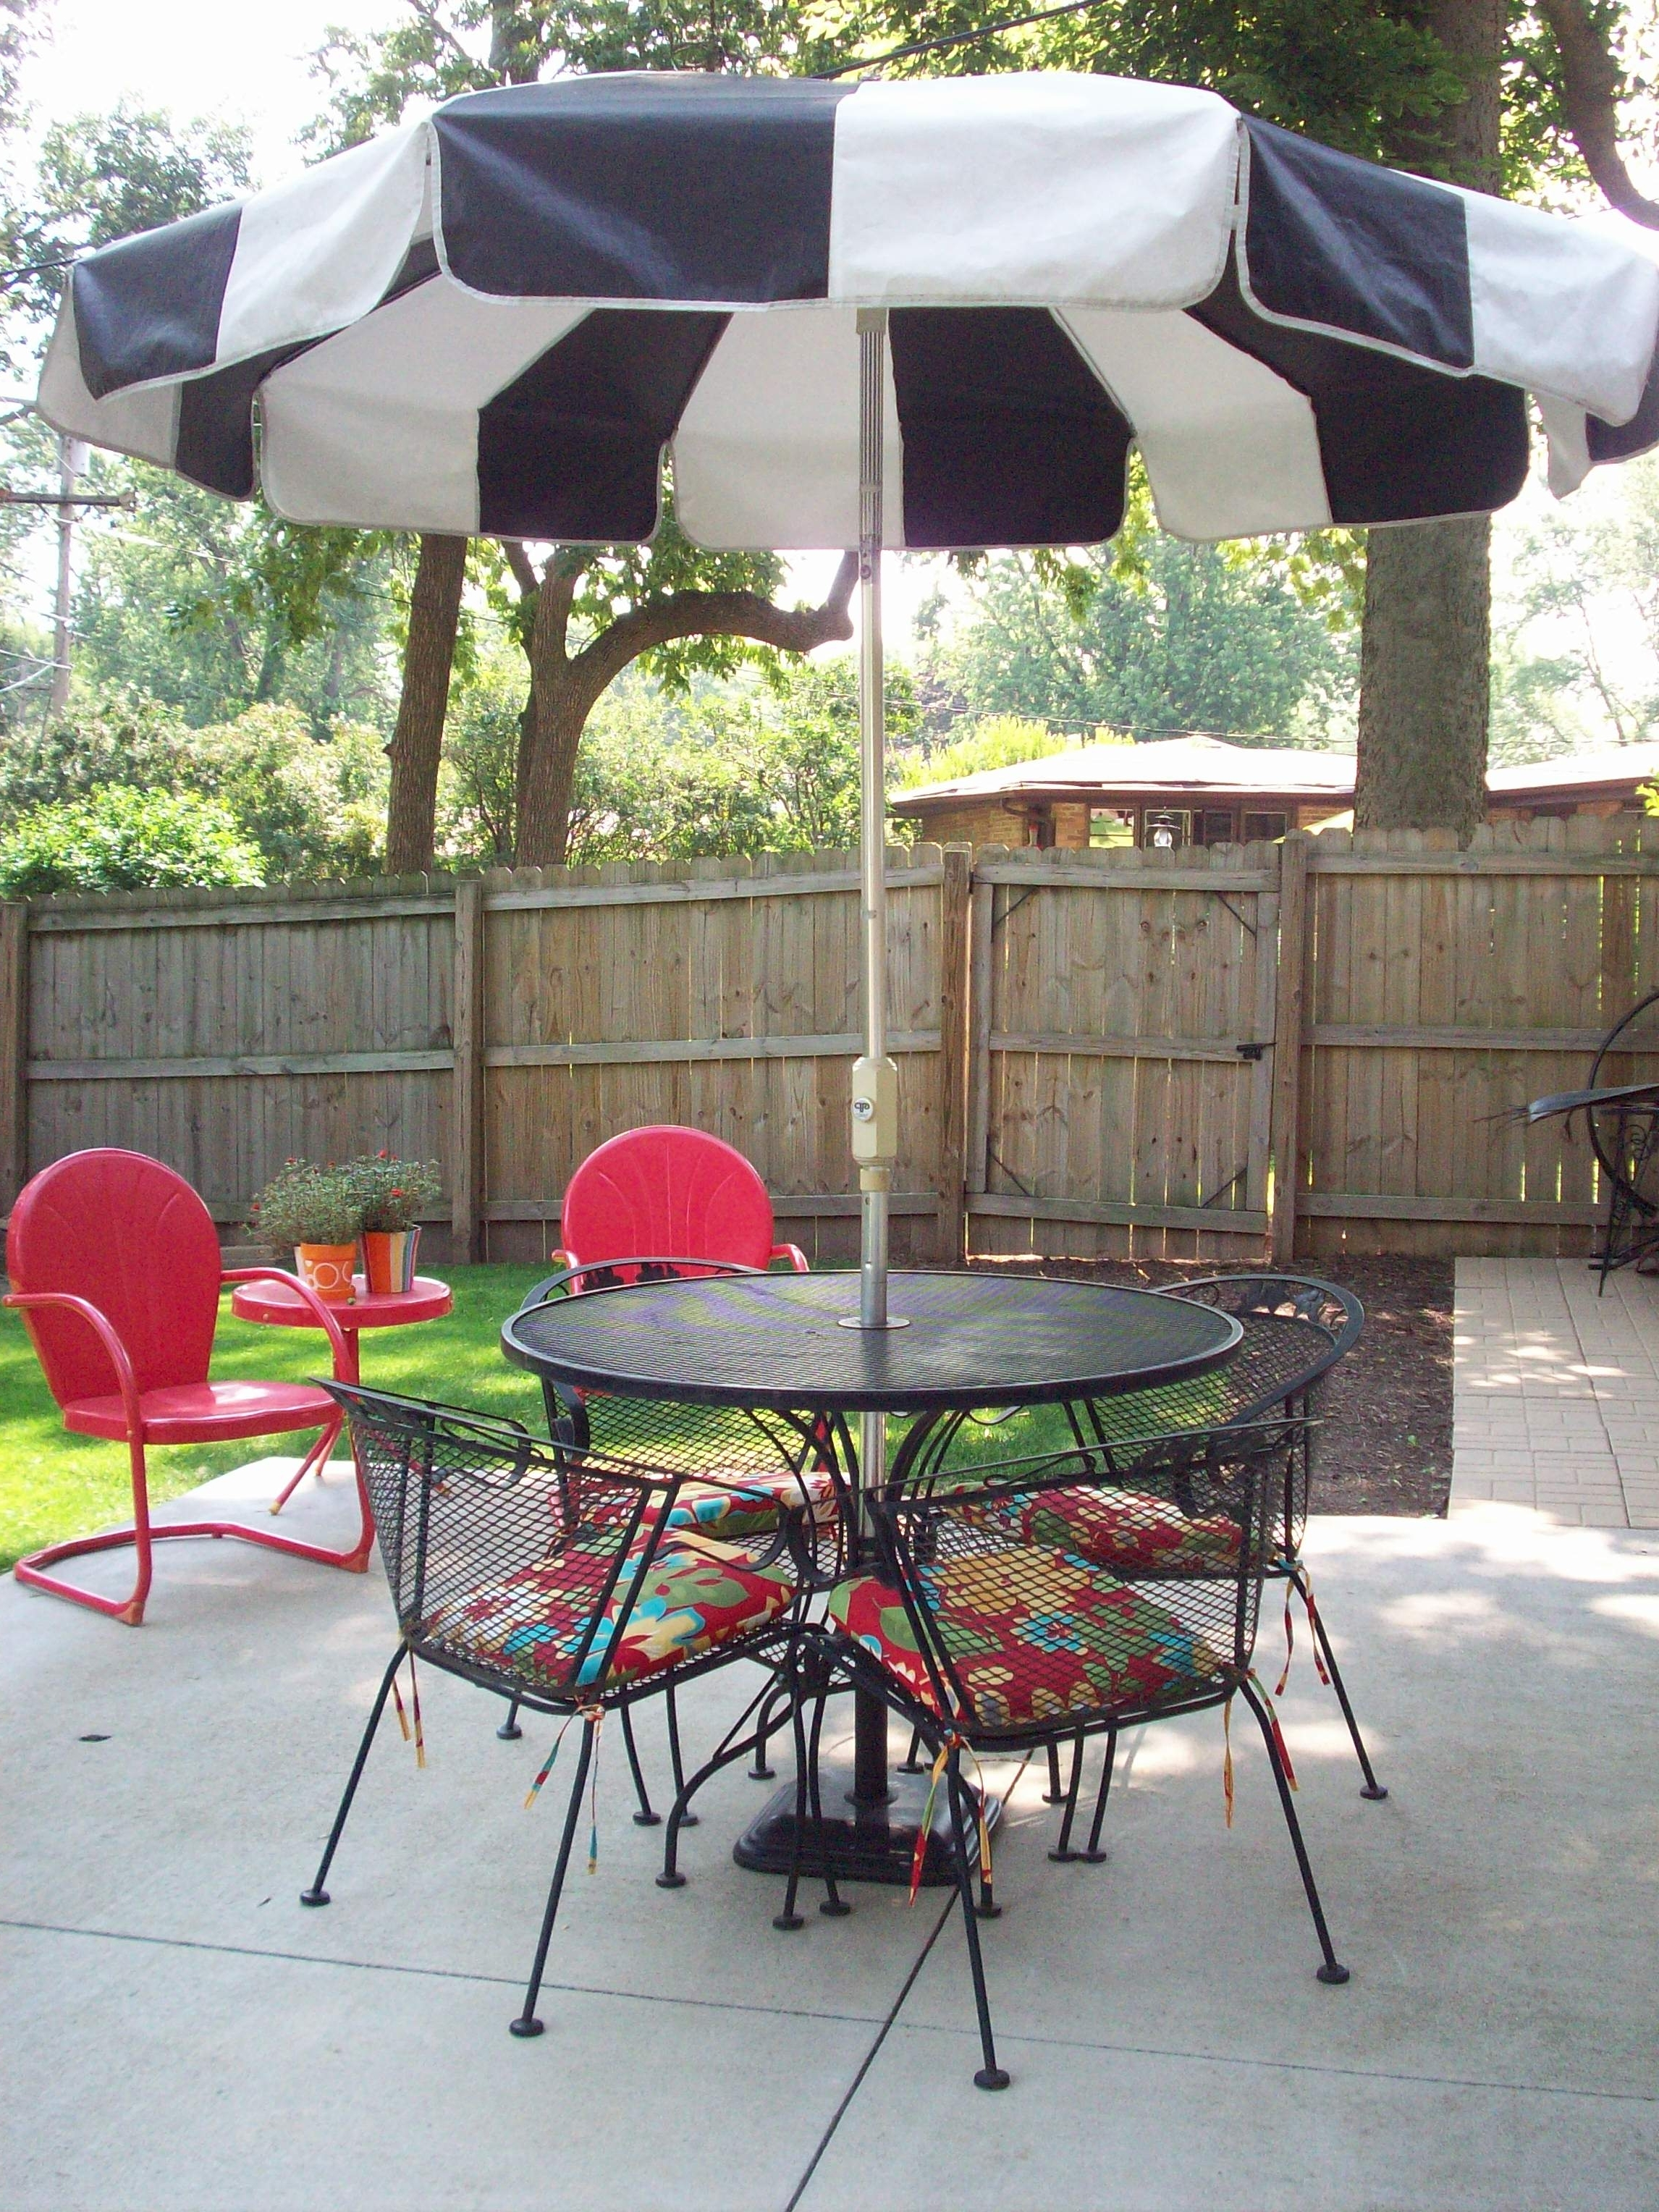 Newest Amazing Umbrella For Patio Table Garden Enchanting Outdoor Patio Within Patio Table And Chairs With Umbrellas (Gallery 11 of 20)